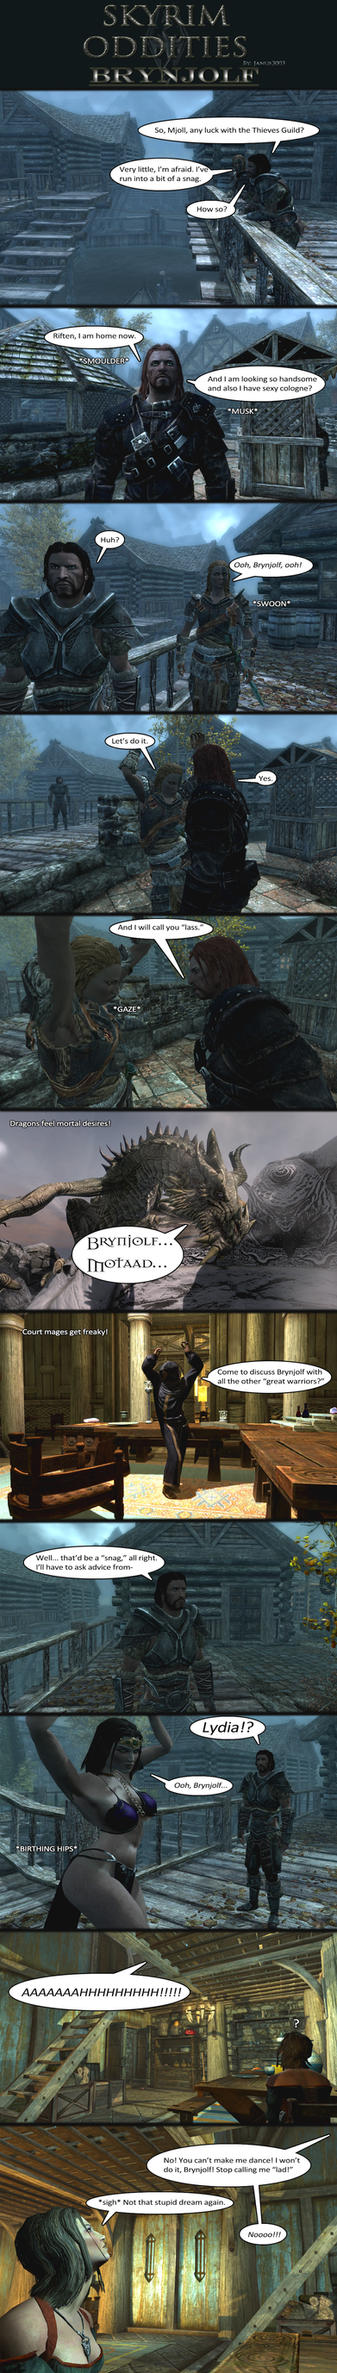 Skyrim Oddities: Brynjolf by Janus3003